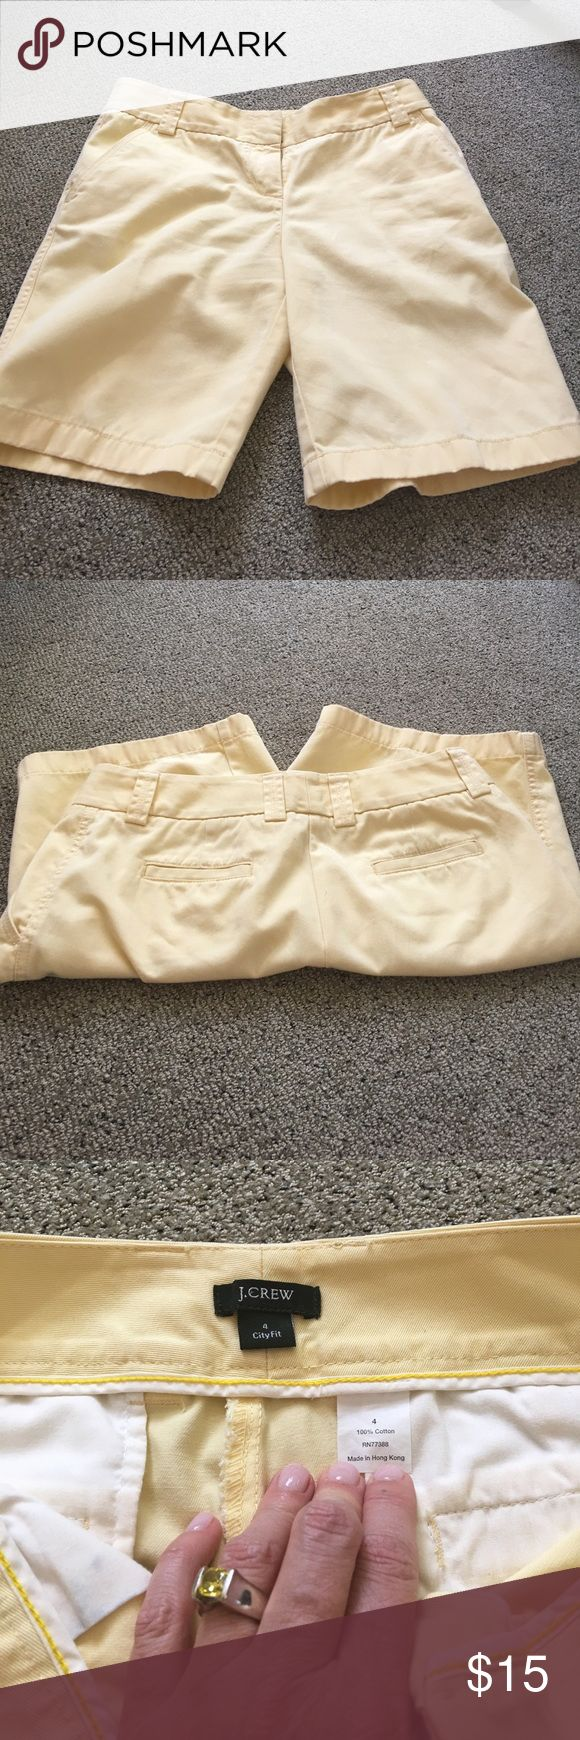 J crew City fit shorts Gorgeous canary yellow shorts by J Crew. 17 inches long and 16 inches across. Lovely and beach perfect! J. Crew Shorts Bermudas